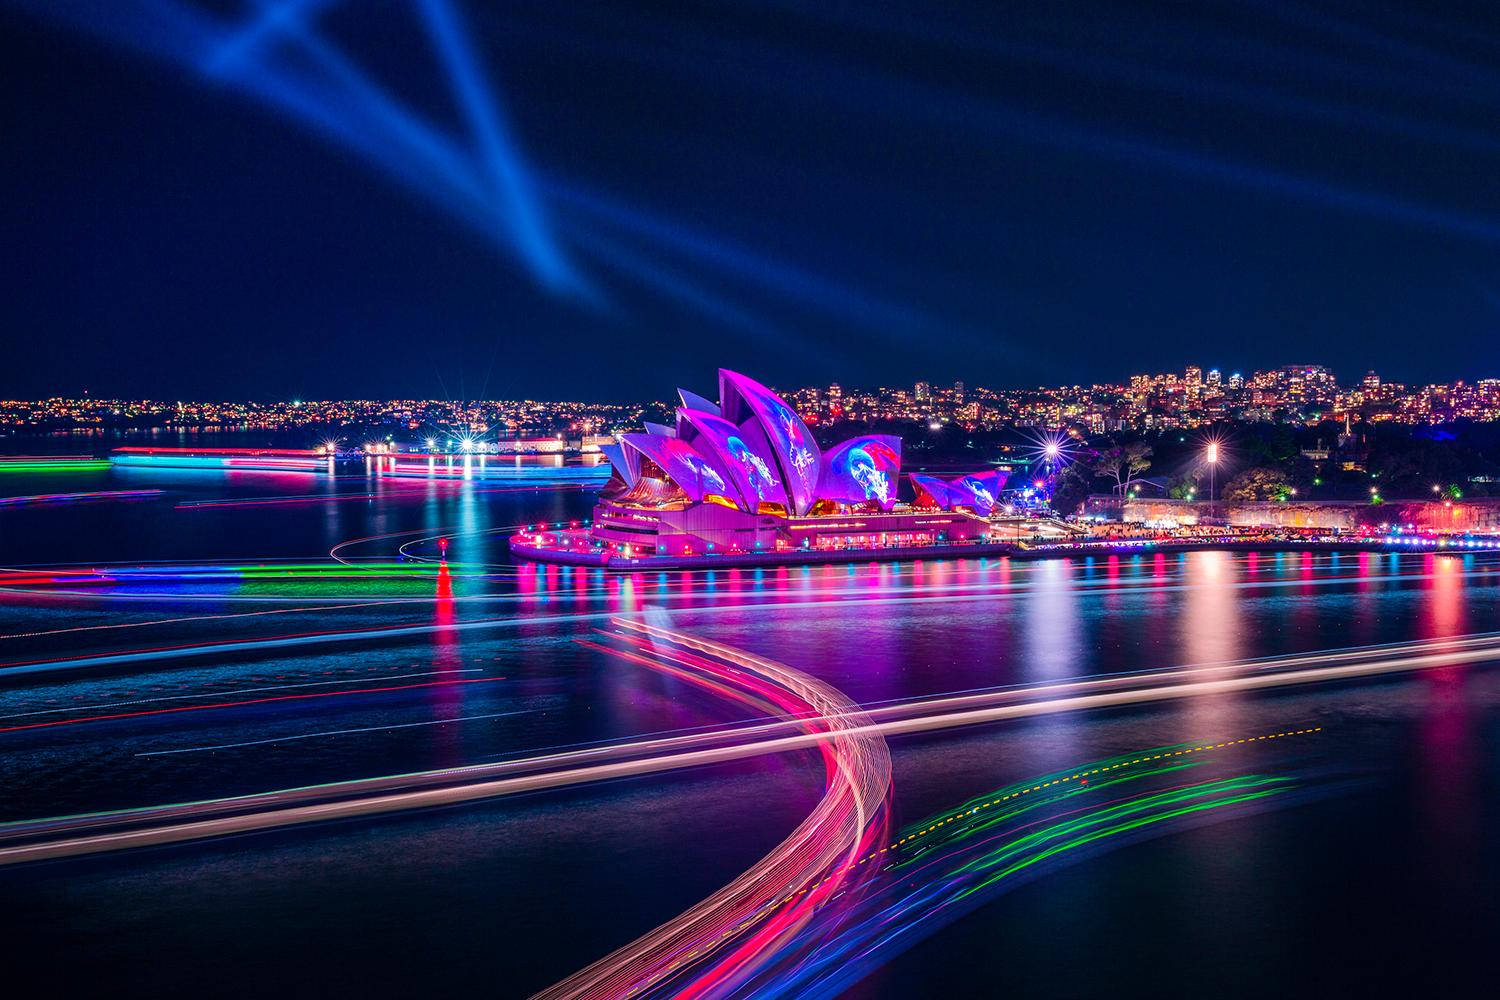 The Sydney Opera House illuminated by the Austral Flora Ballet light projection during Vivid Sydney 2019